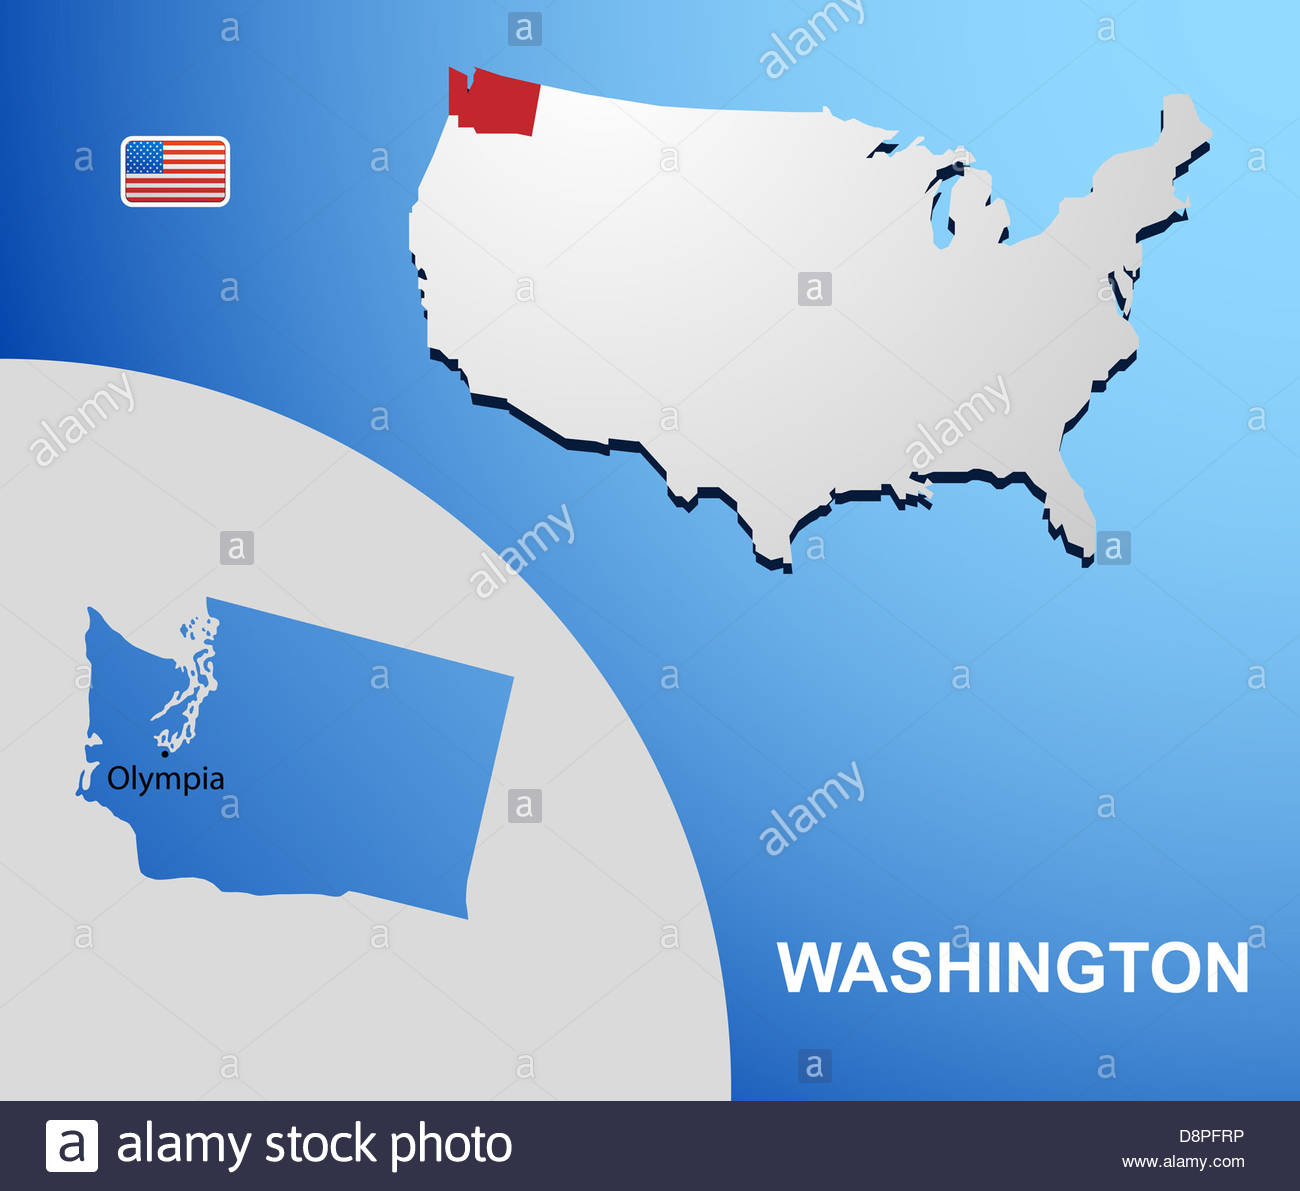 Washington On USA Map With Map Of The State Stock Photo Royalty - Washington on usa map